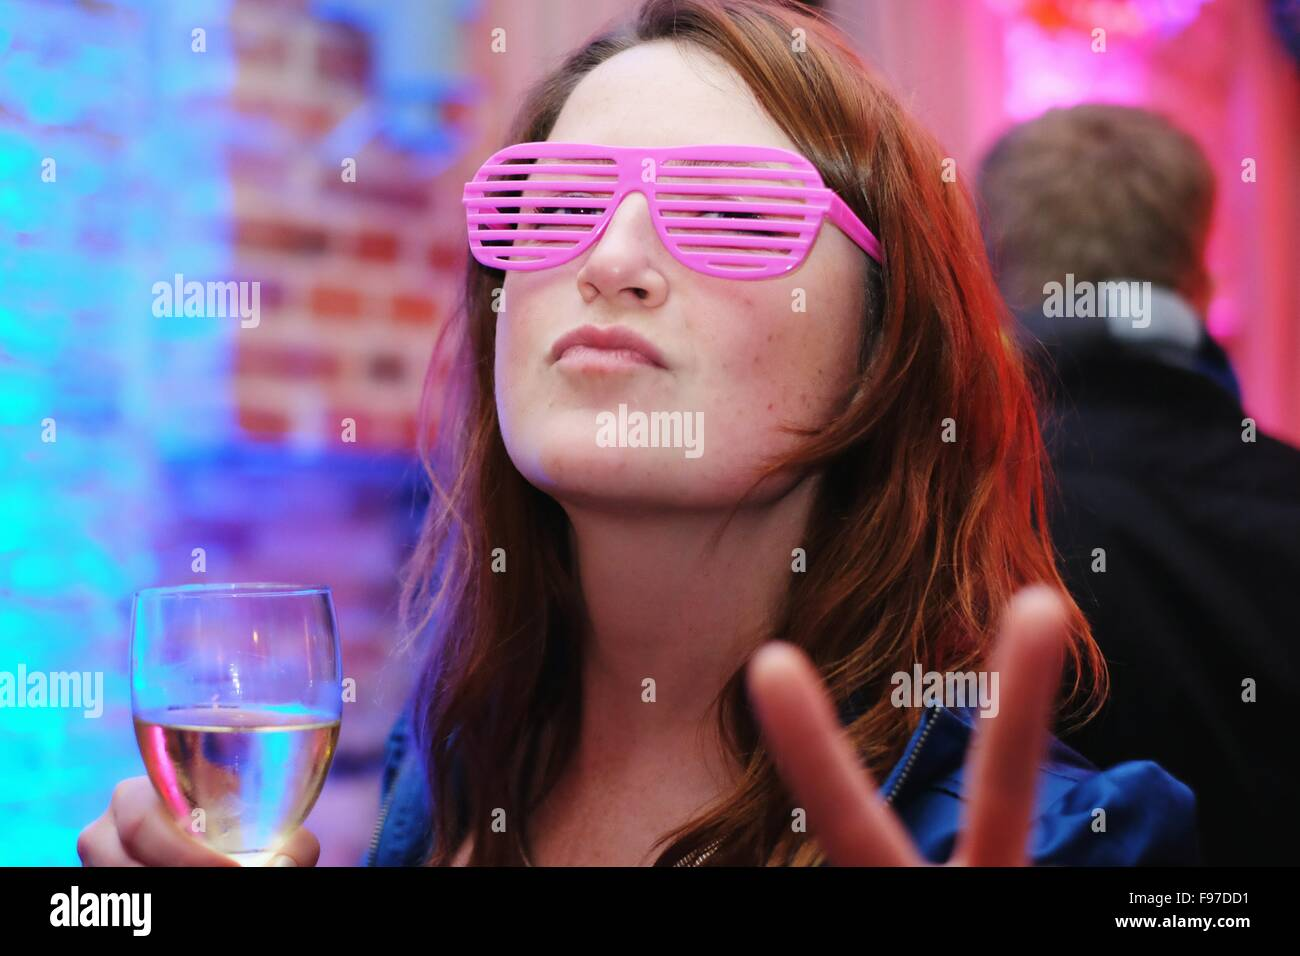 Portrait Of Young Woman Wearing Pink Eyeglasses Gesturing Peace Sign - Stock Image